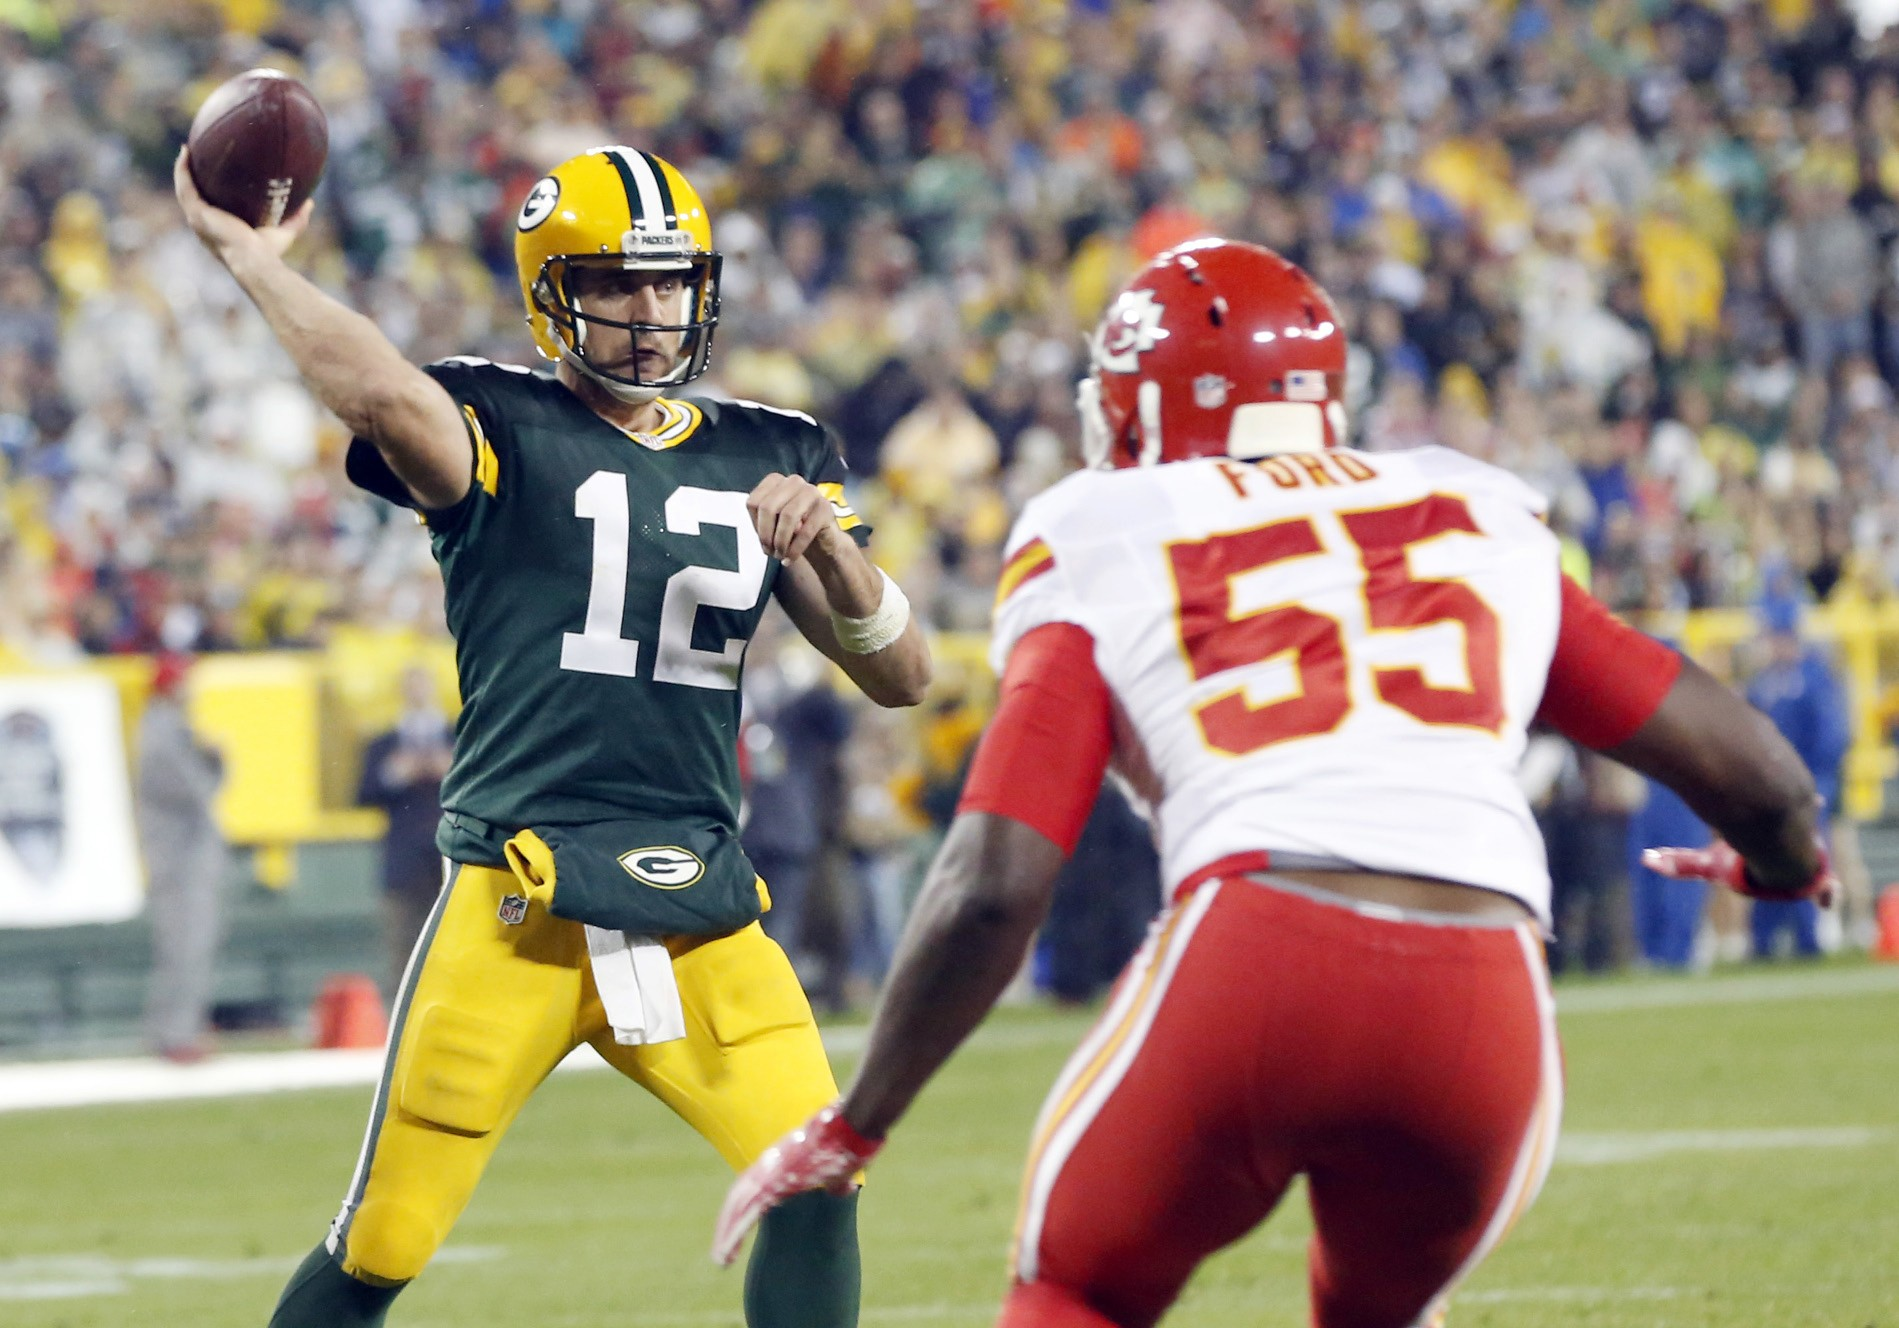 Green Bay Packers' Aaron Rodgers throws with Kansas City Chiefs' Dee Ford (55) rushing during the second half of an NFL football game Monday in Green Bay, Wis.